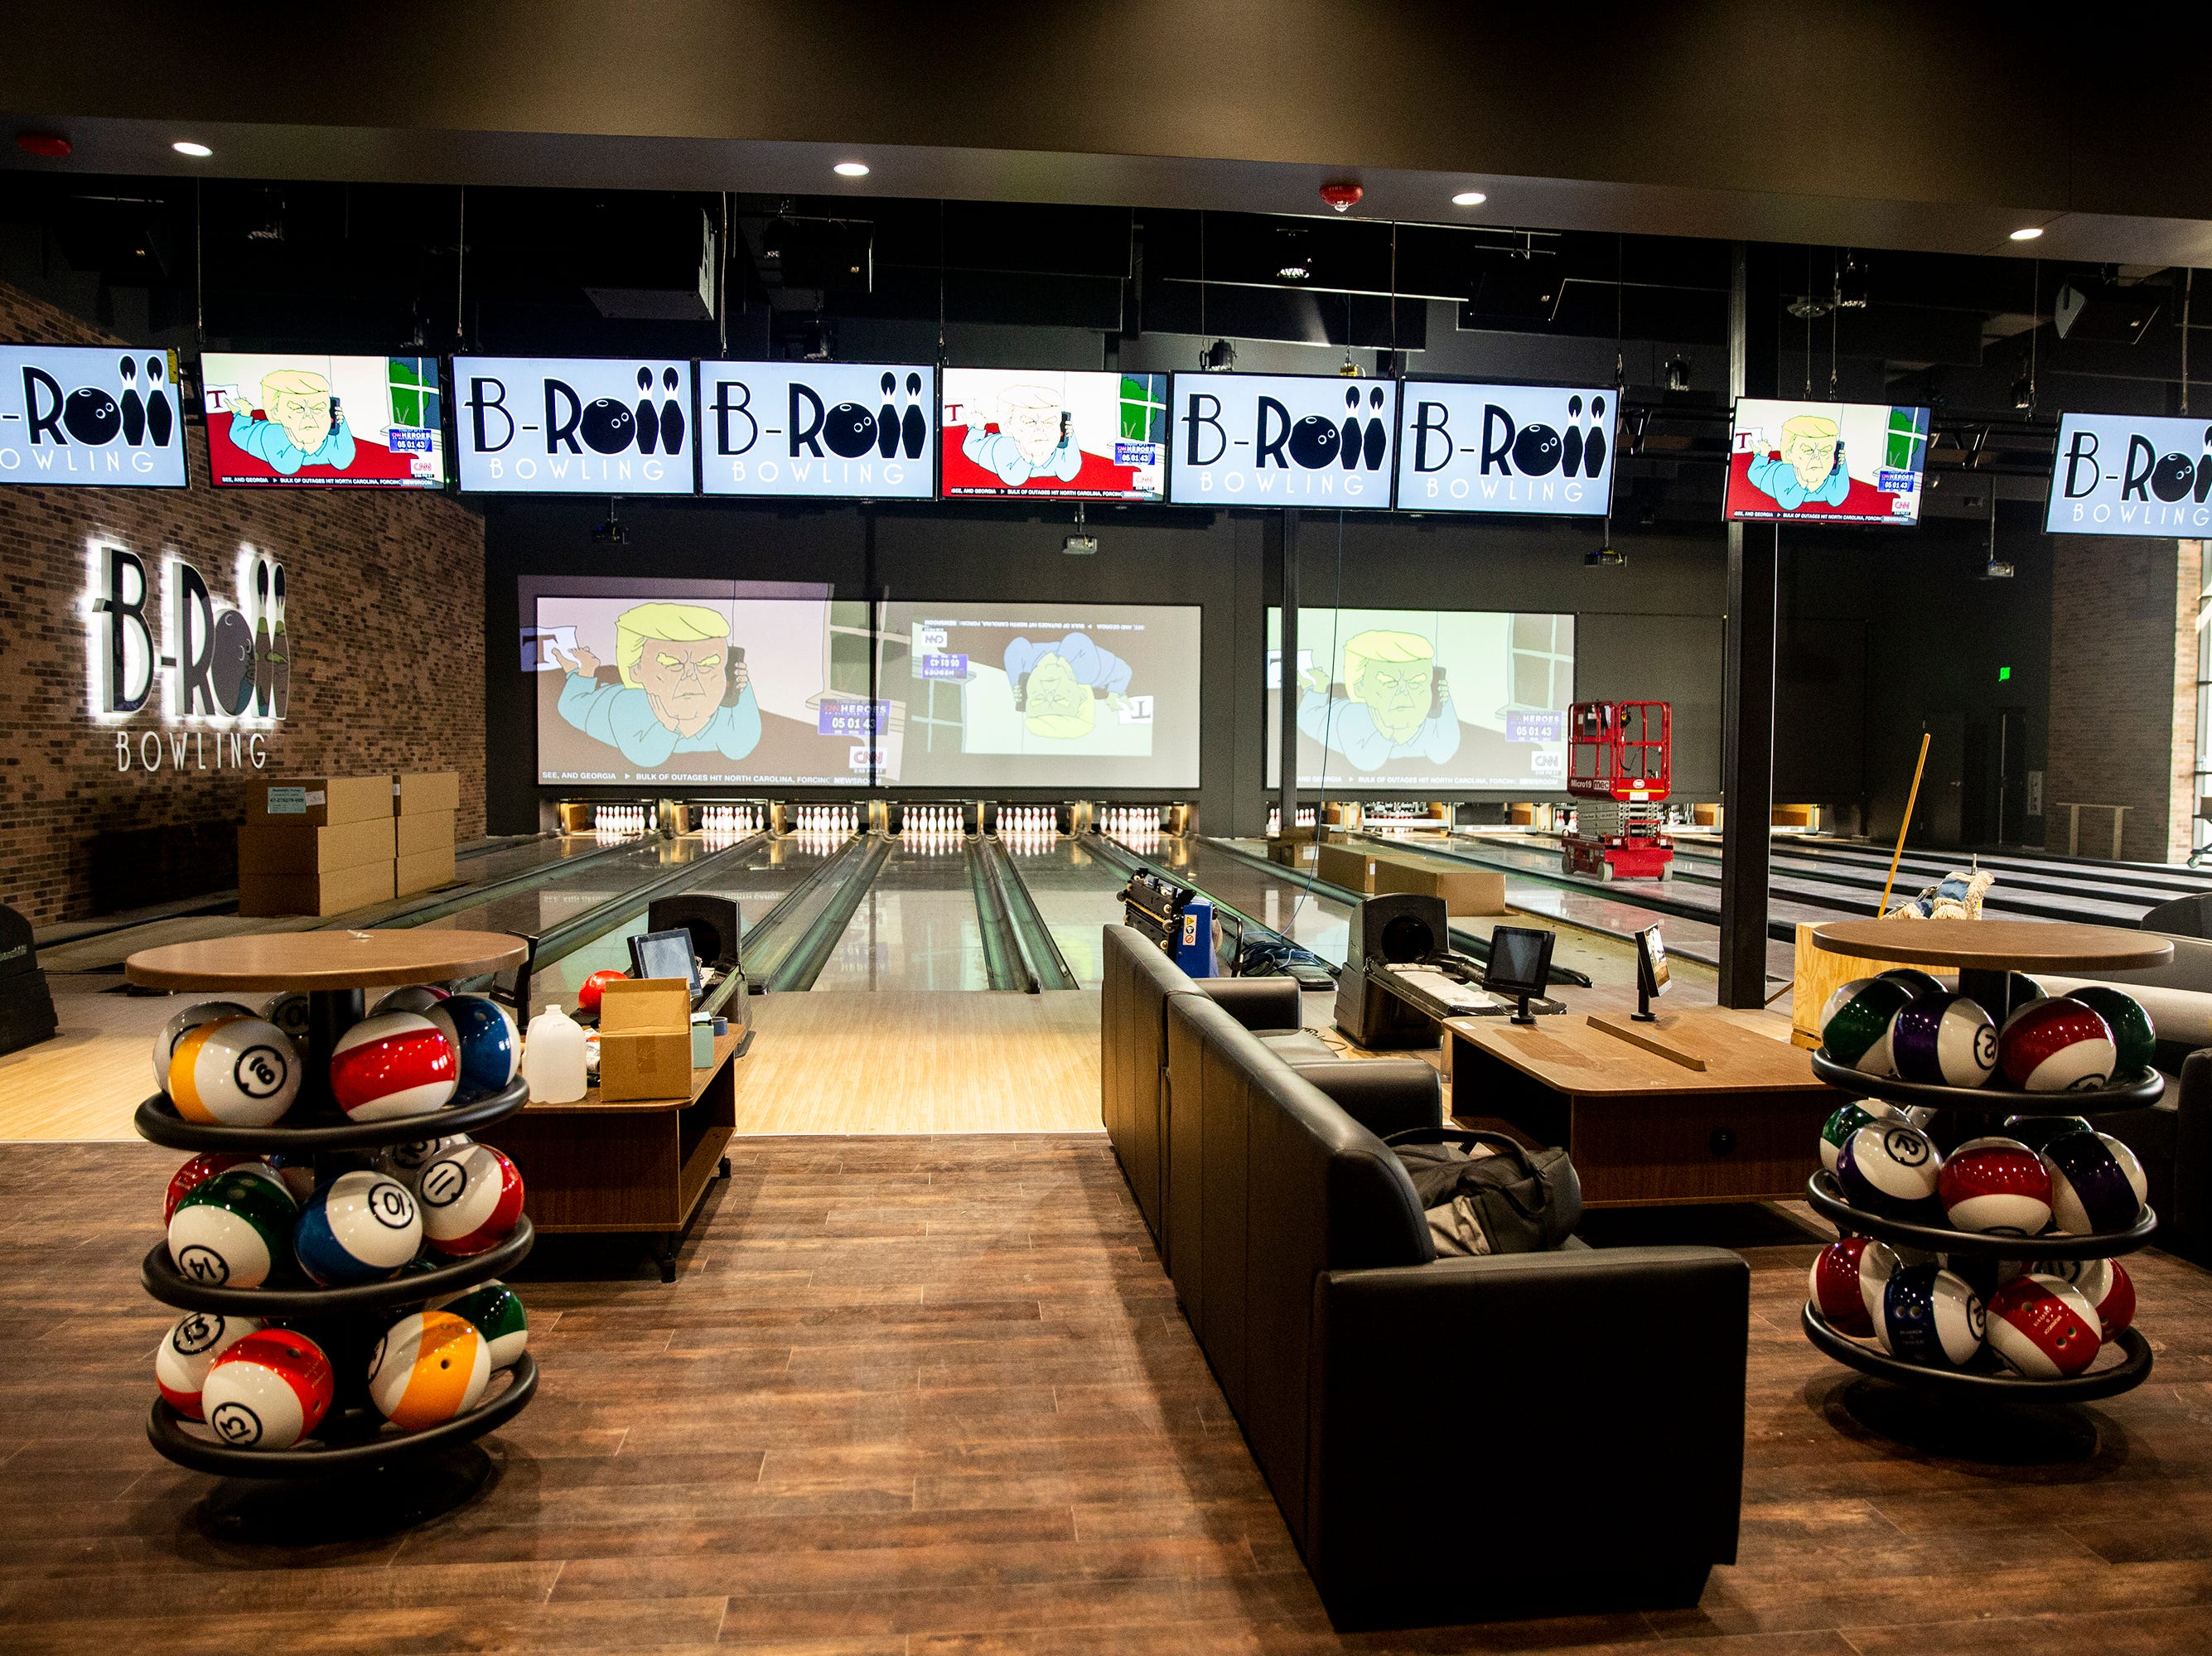 Inside B & B Ankeny 12 & B-Roll Bowling, on Sunday, Dec. 9, 2018, in Ankeny. This theater is one of the few to offer an arcade, bowling, full bar and theater in one place.